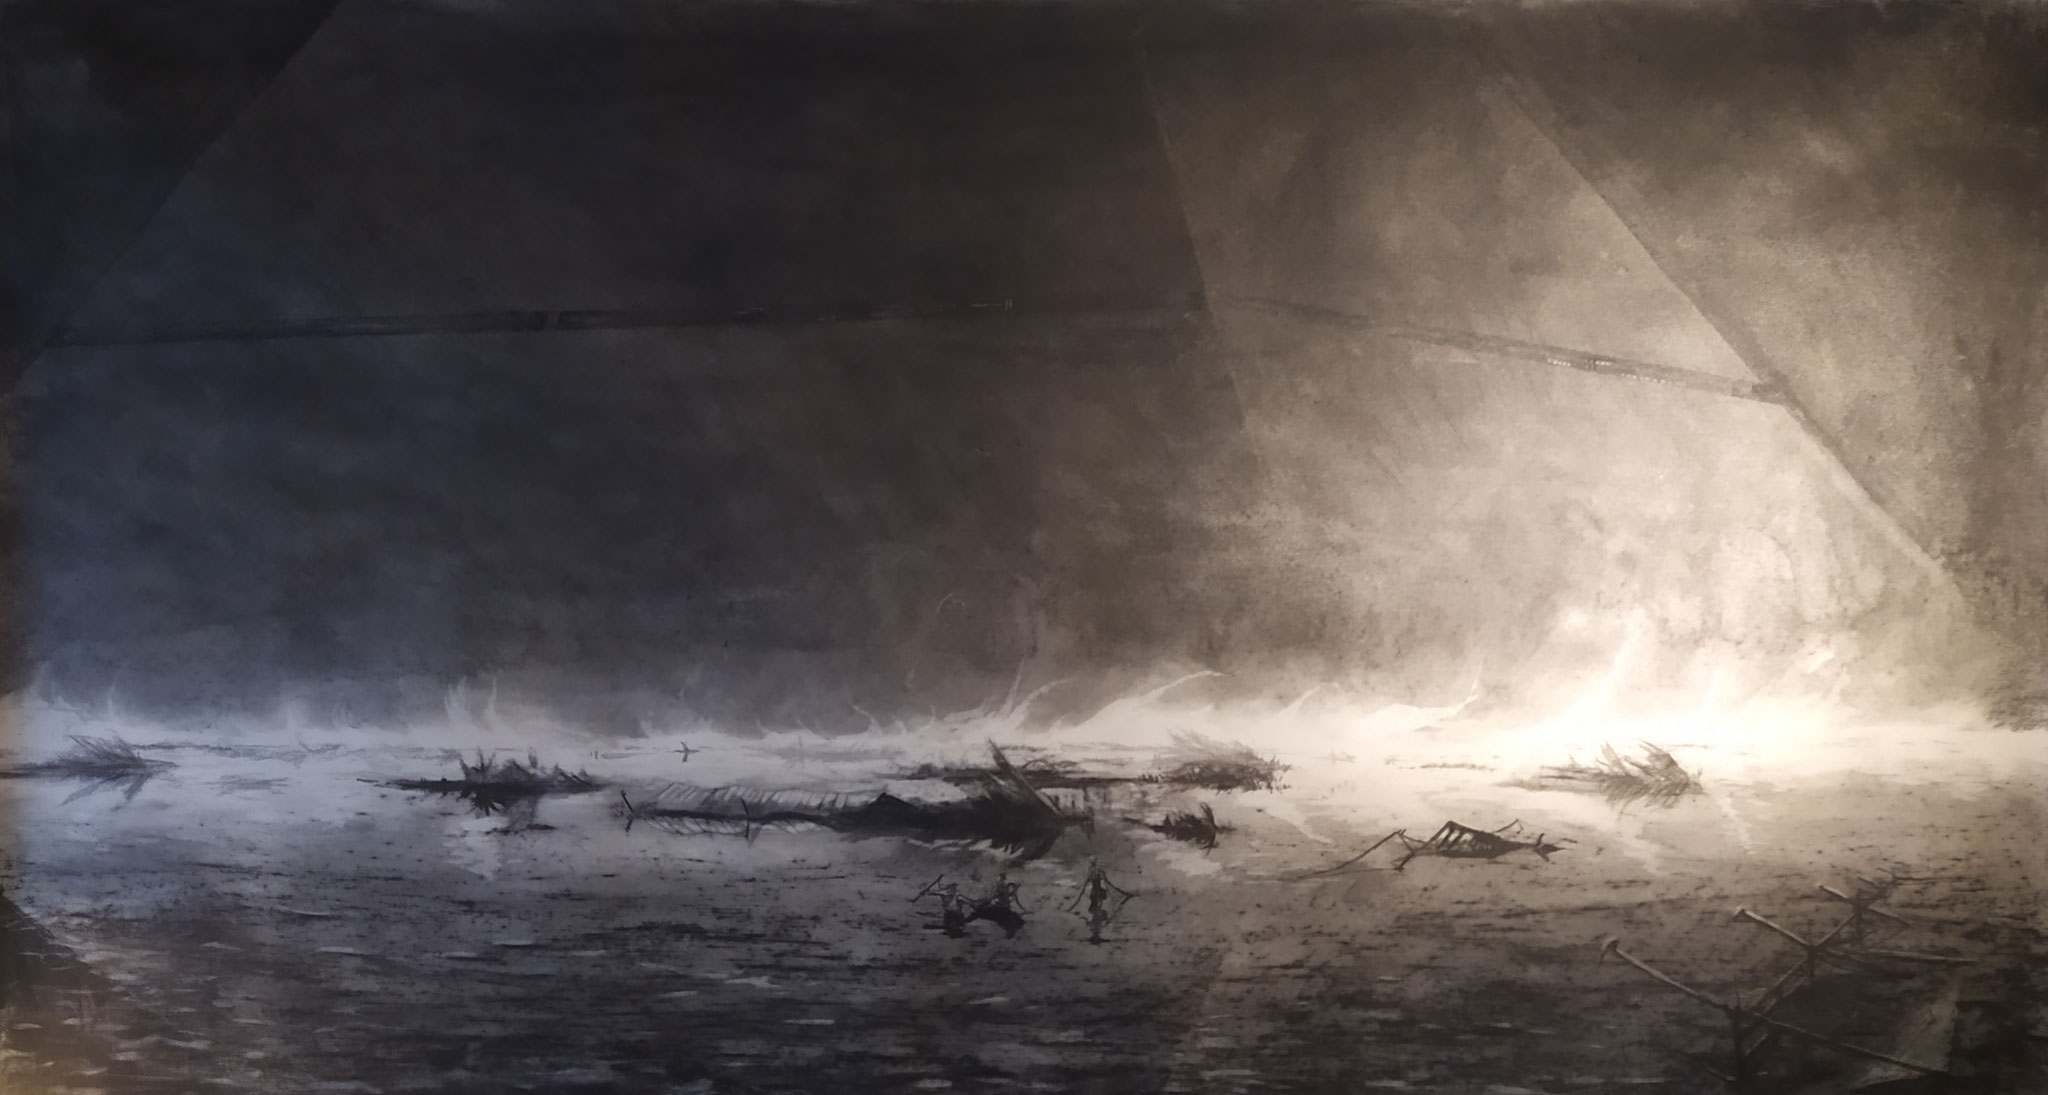 2019 - Swamp  - Charcoal and chalk on paper 170 x 100 cm - SOLD